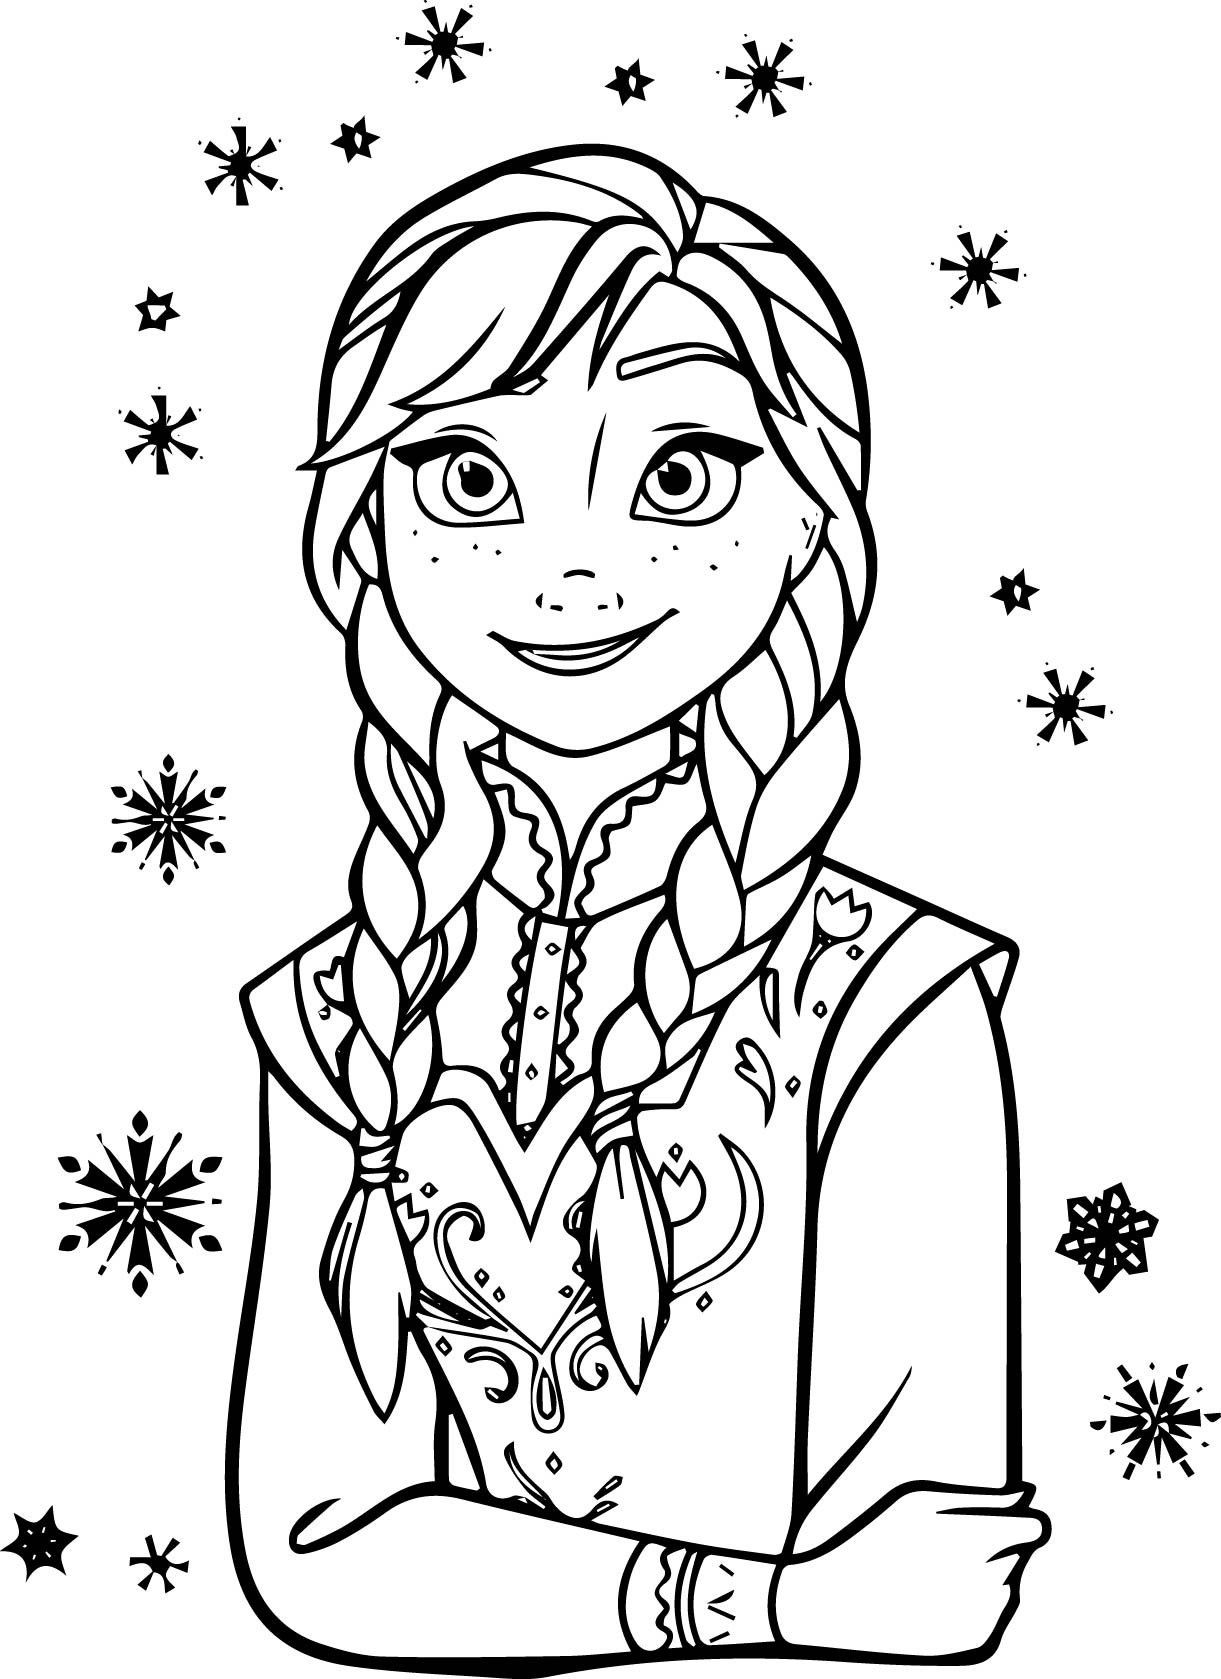 free frozen coloring pages frozens olaf coloring pages best coloring pages for kids pages coloring frozen free